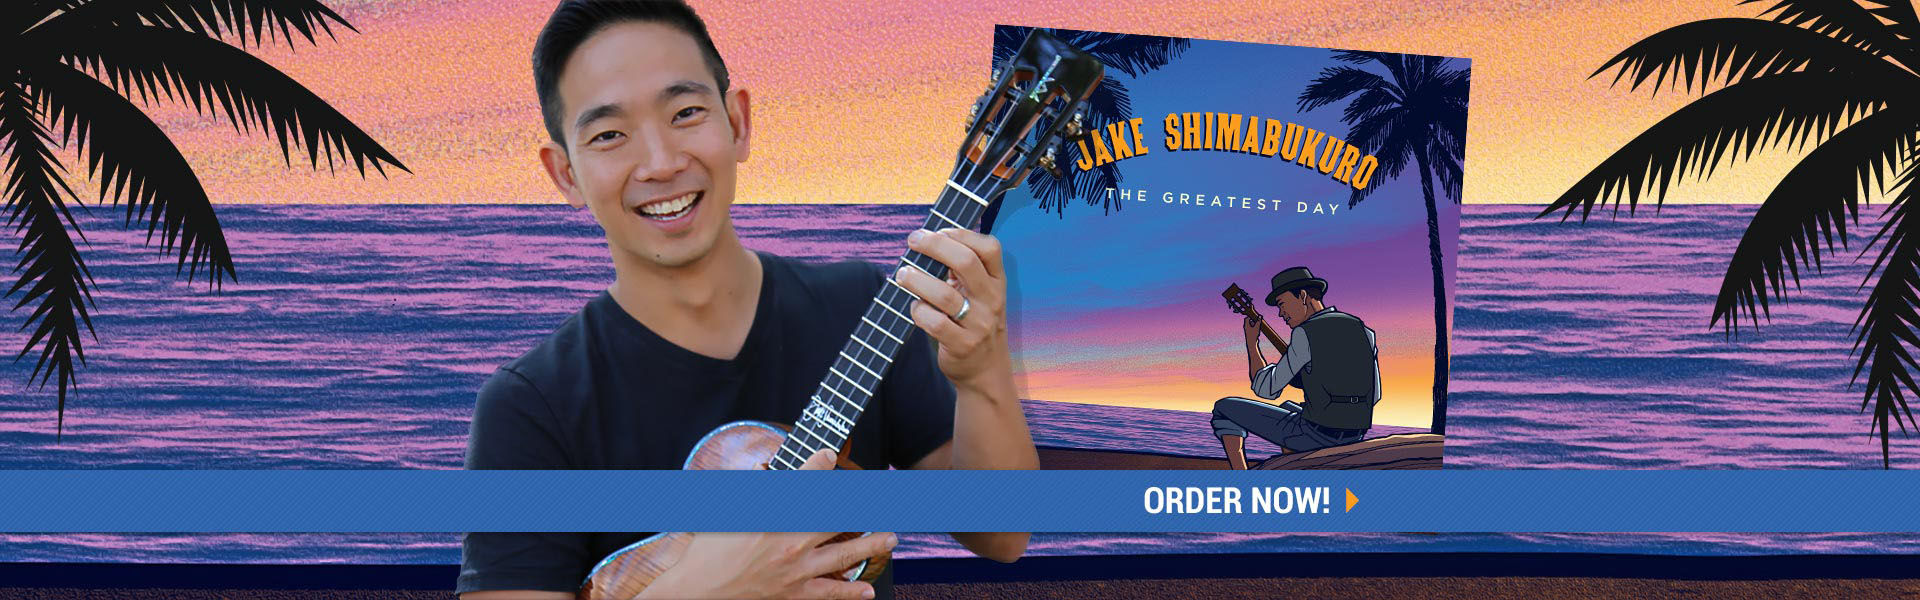 Pre-Order available for Jake Shimabukuro????????'??????????????'???????s new album, The Greatest Day!